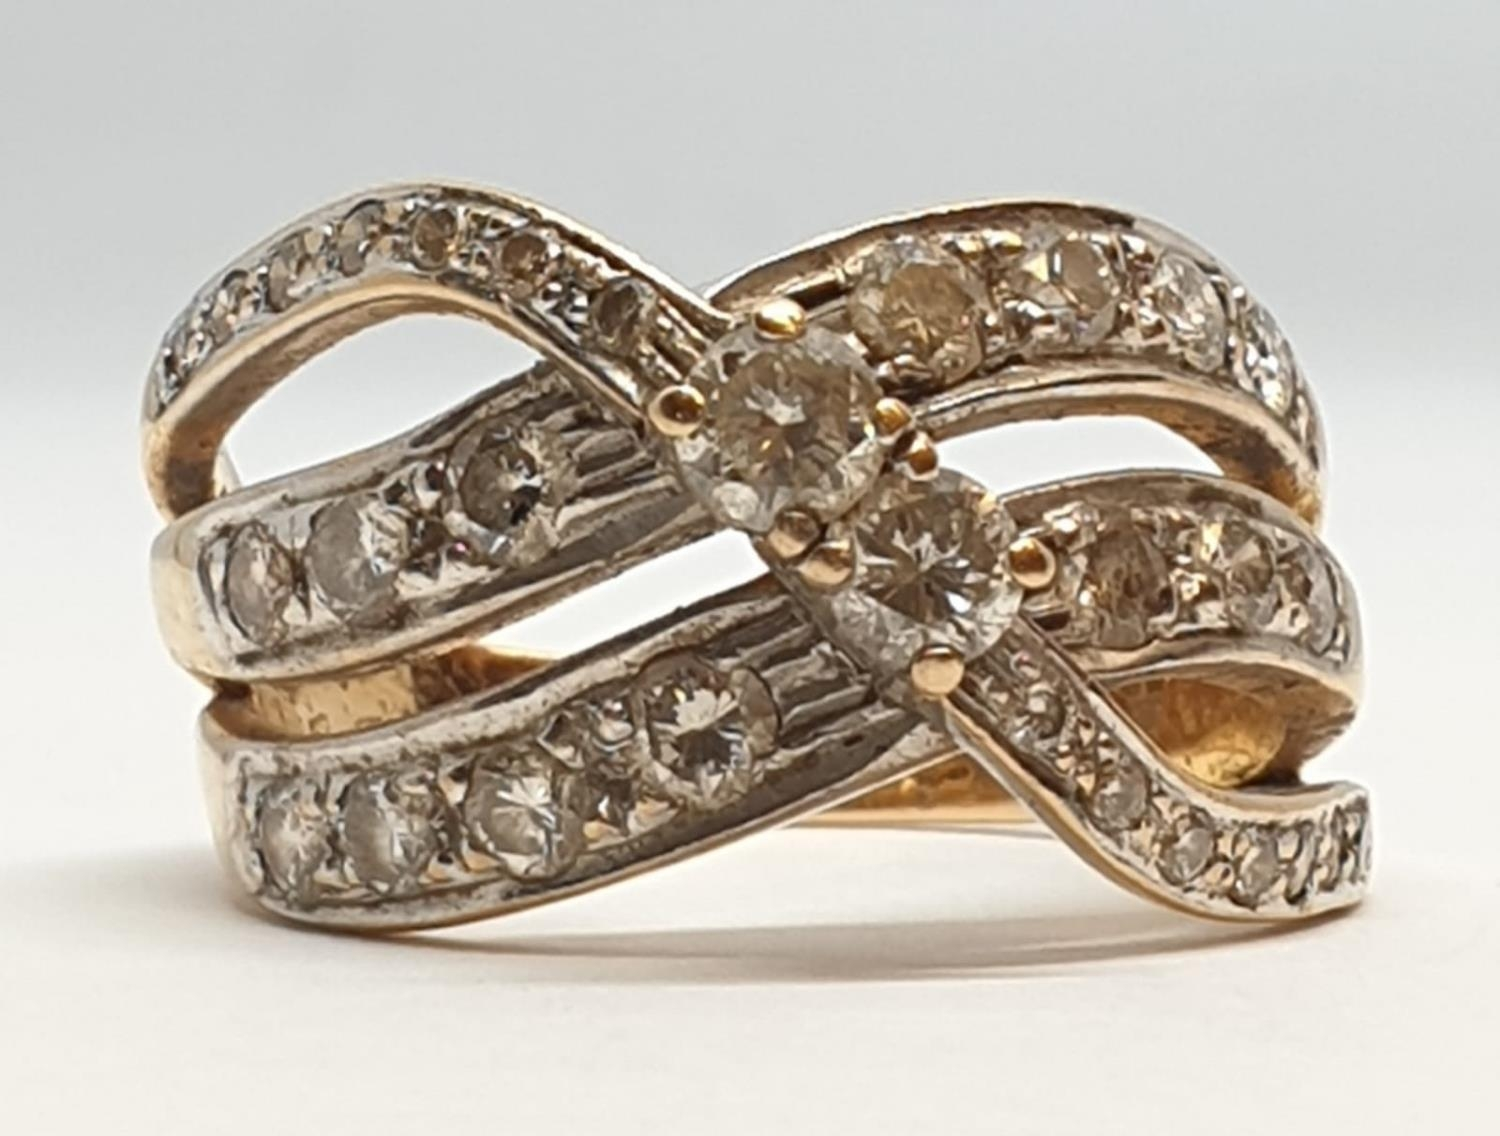 18ct Yellow gold diamond set fancy three row twist band ring. Weight 8.5g, Approx. 0.60ct of - Image 3 of 14